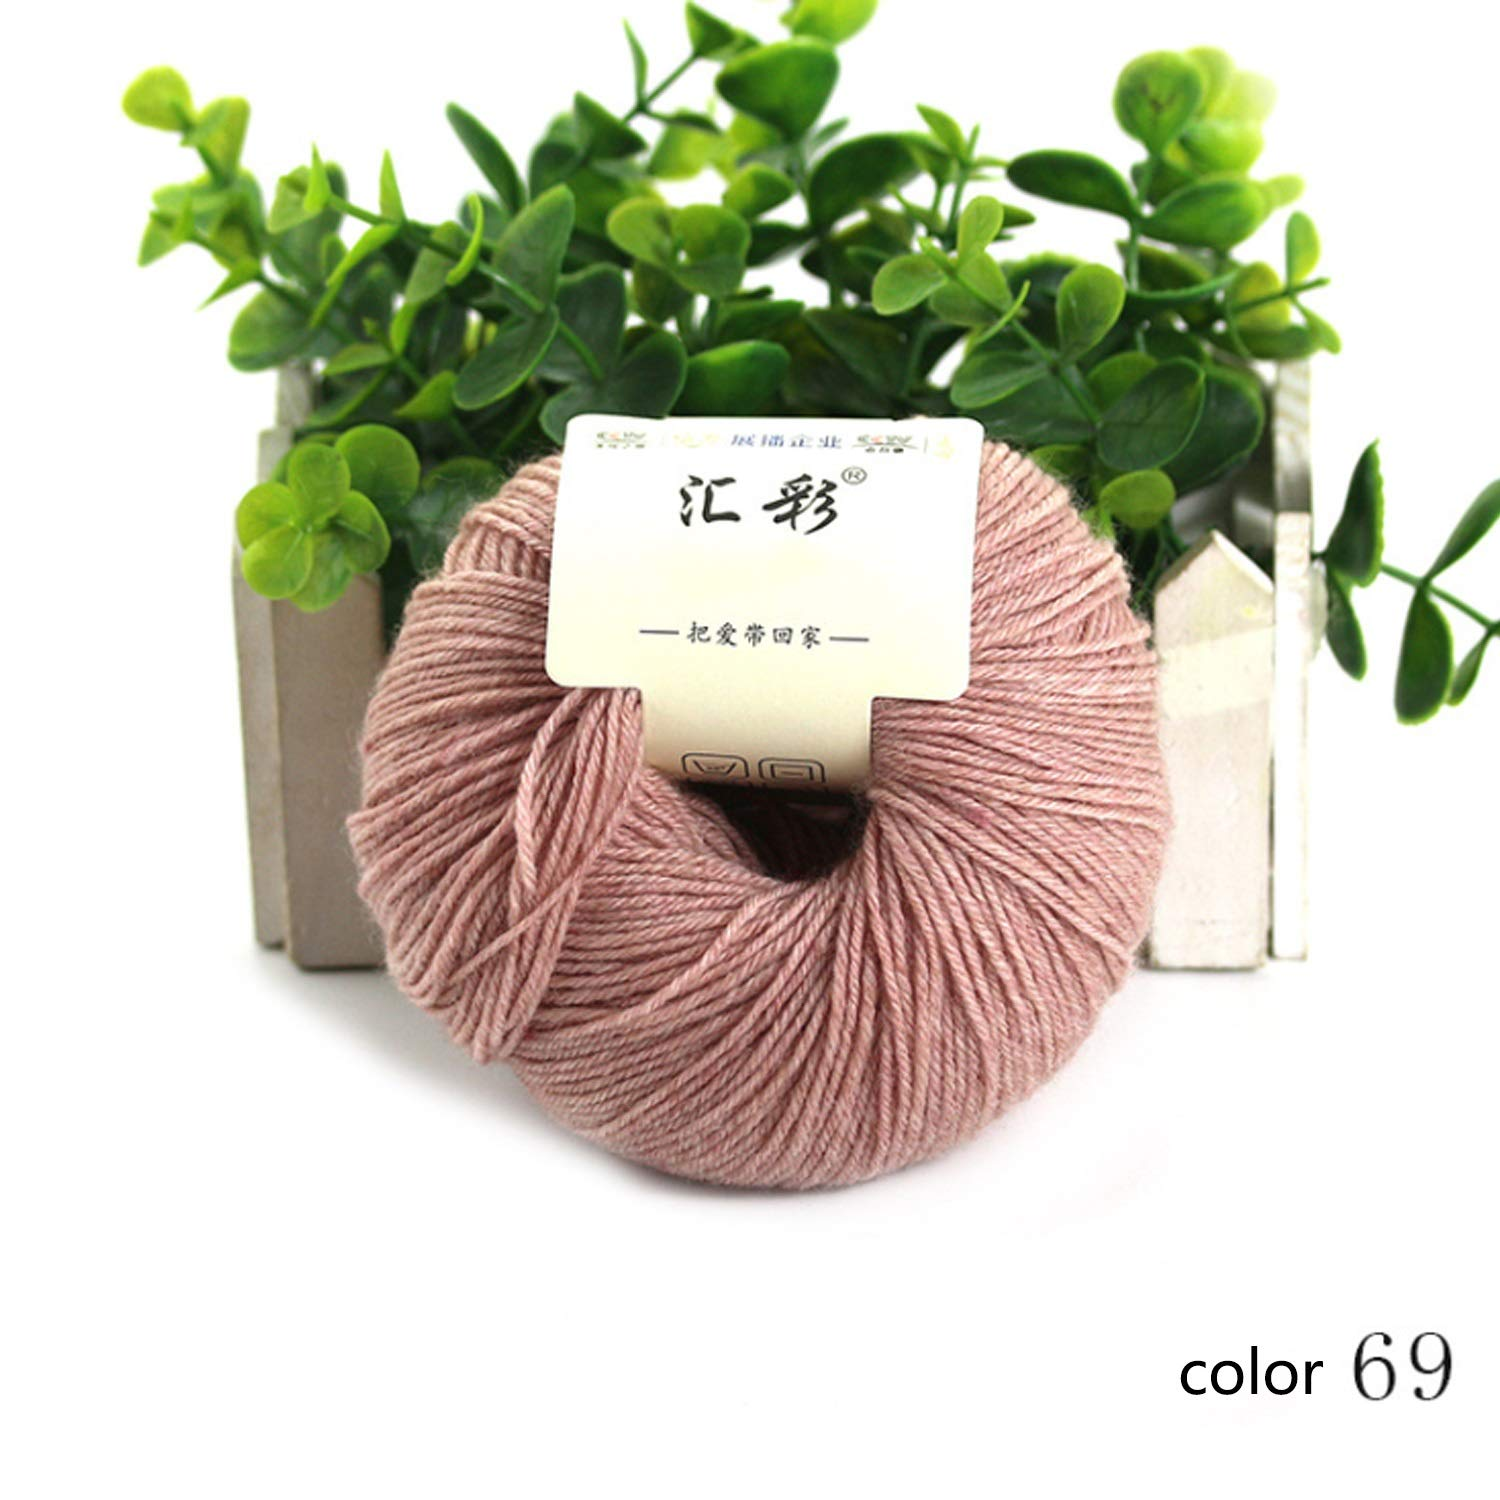 Col 69 1 ball Shuo lan hu wai Yarn knitting yarn wool yarn autumn winter hand series scarf line soft baby sweater line 1 ball about 50 g 4 15 NM 15 colors available (color   Col 89, UnitCount   10 balls)